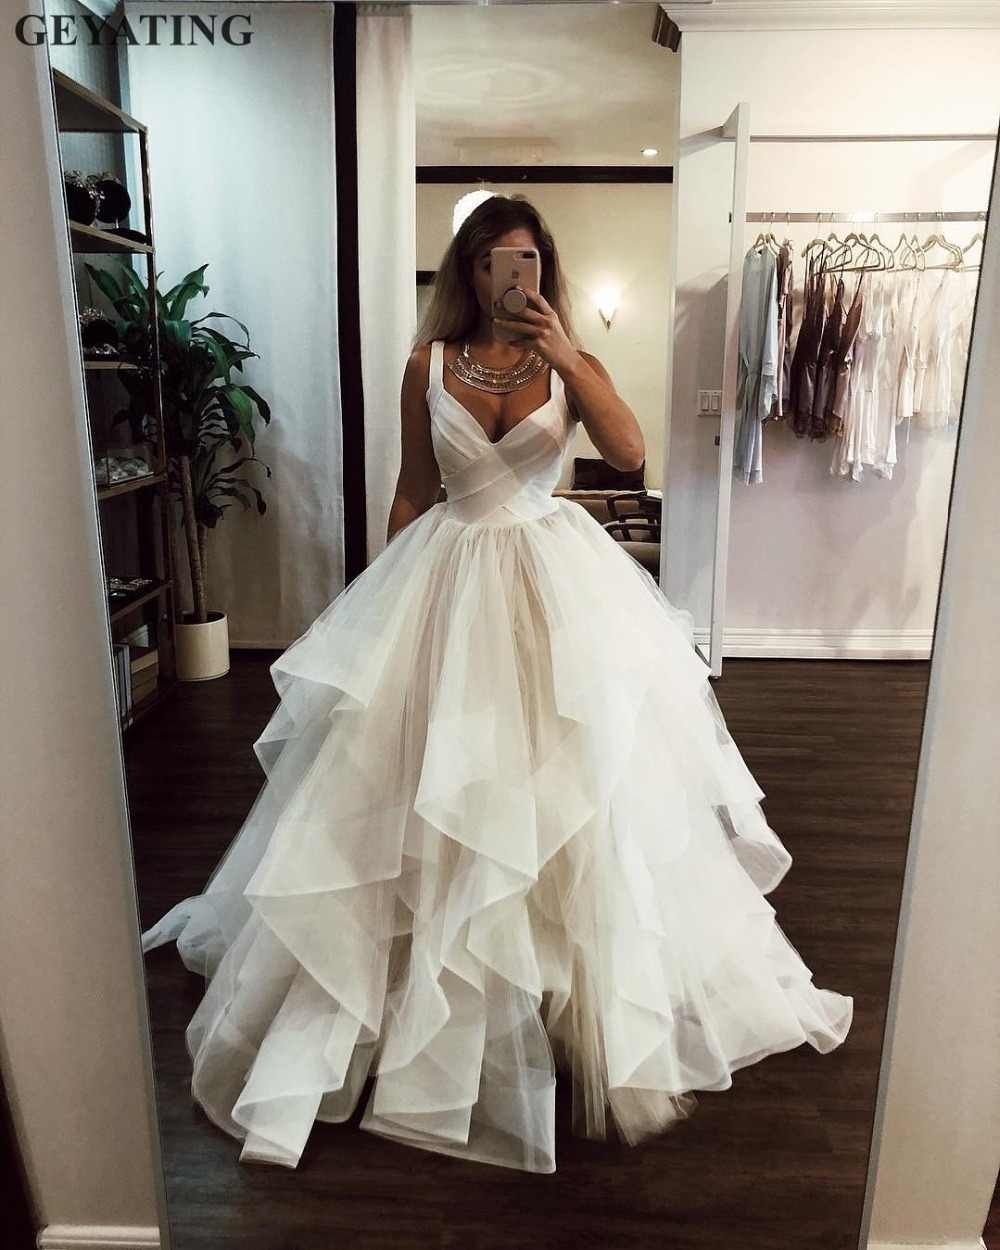 Ivory Ruffled Tulle Ball Gown Wedding Dress 2020 Elegant V Neck Tank Straps Ruched Puffy Princess Bridal Dresses Plus Size Gowns Aliexpress,Mermaid Corset Mermaid Wedding Dresses Plus Size